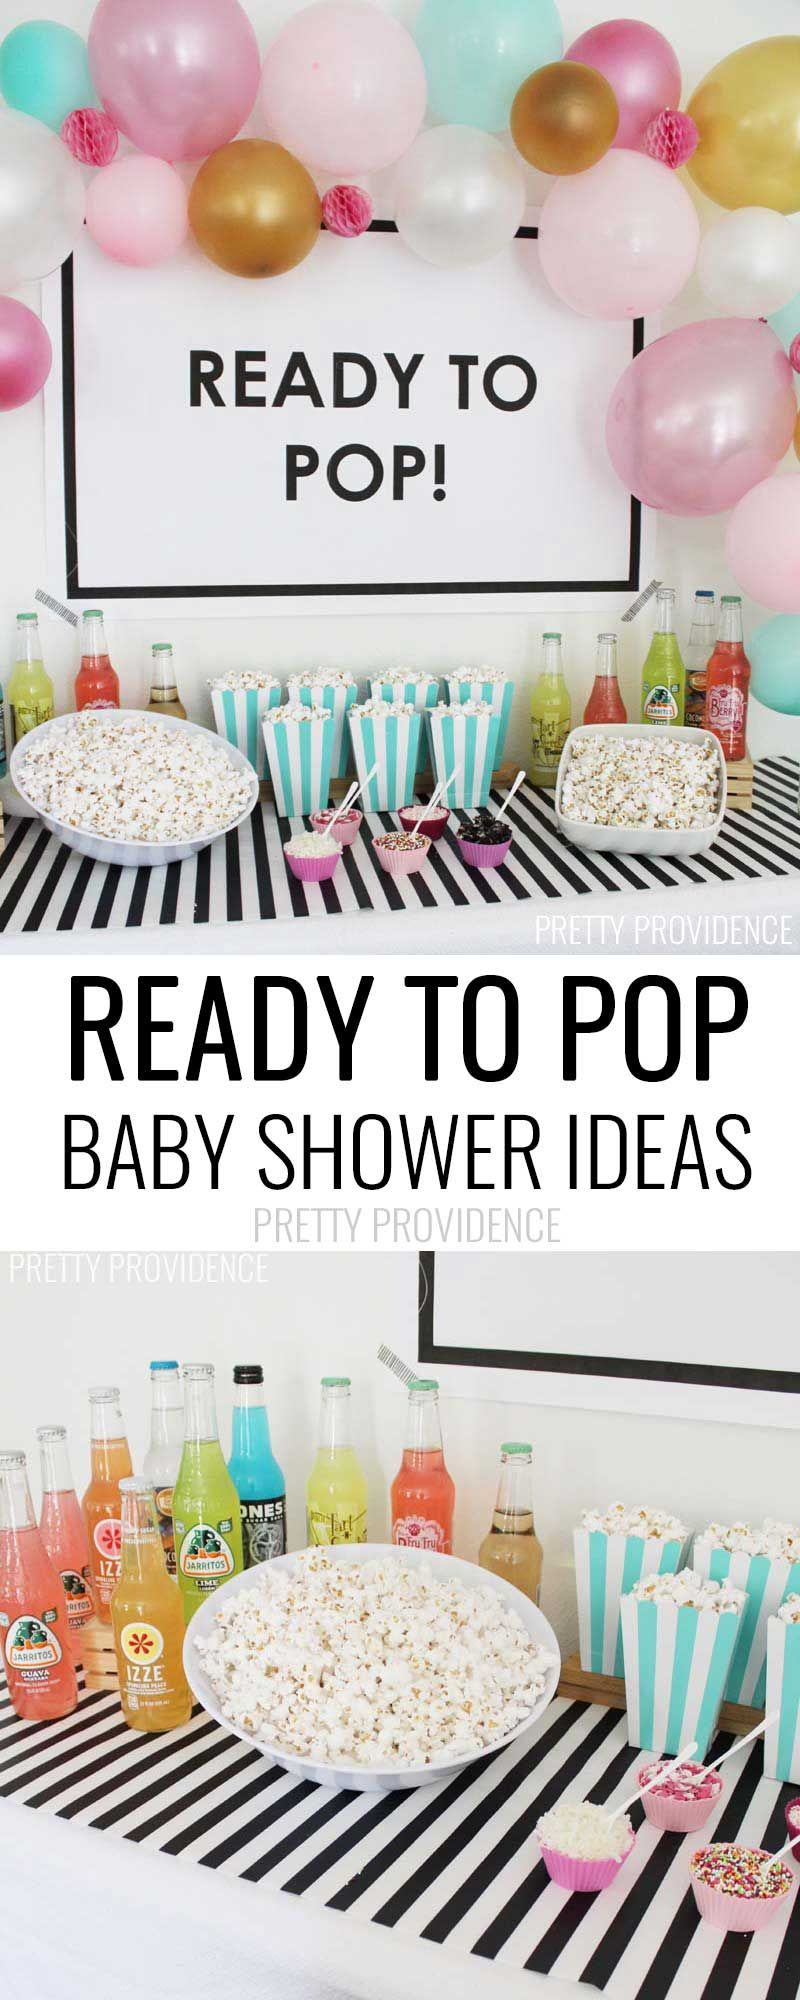 Ready To Pop Baby Shower Ideas To Shower Pinterest Baby Shower